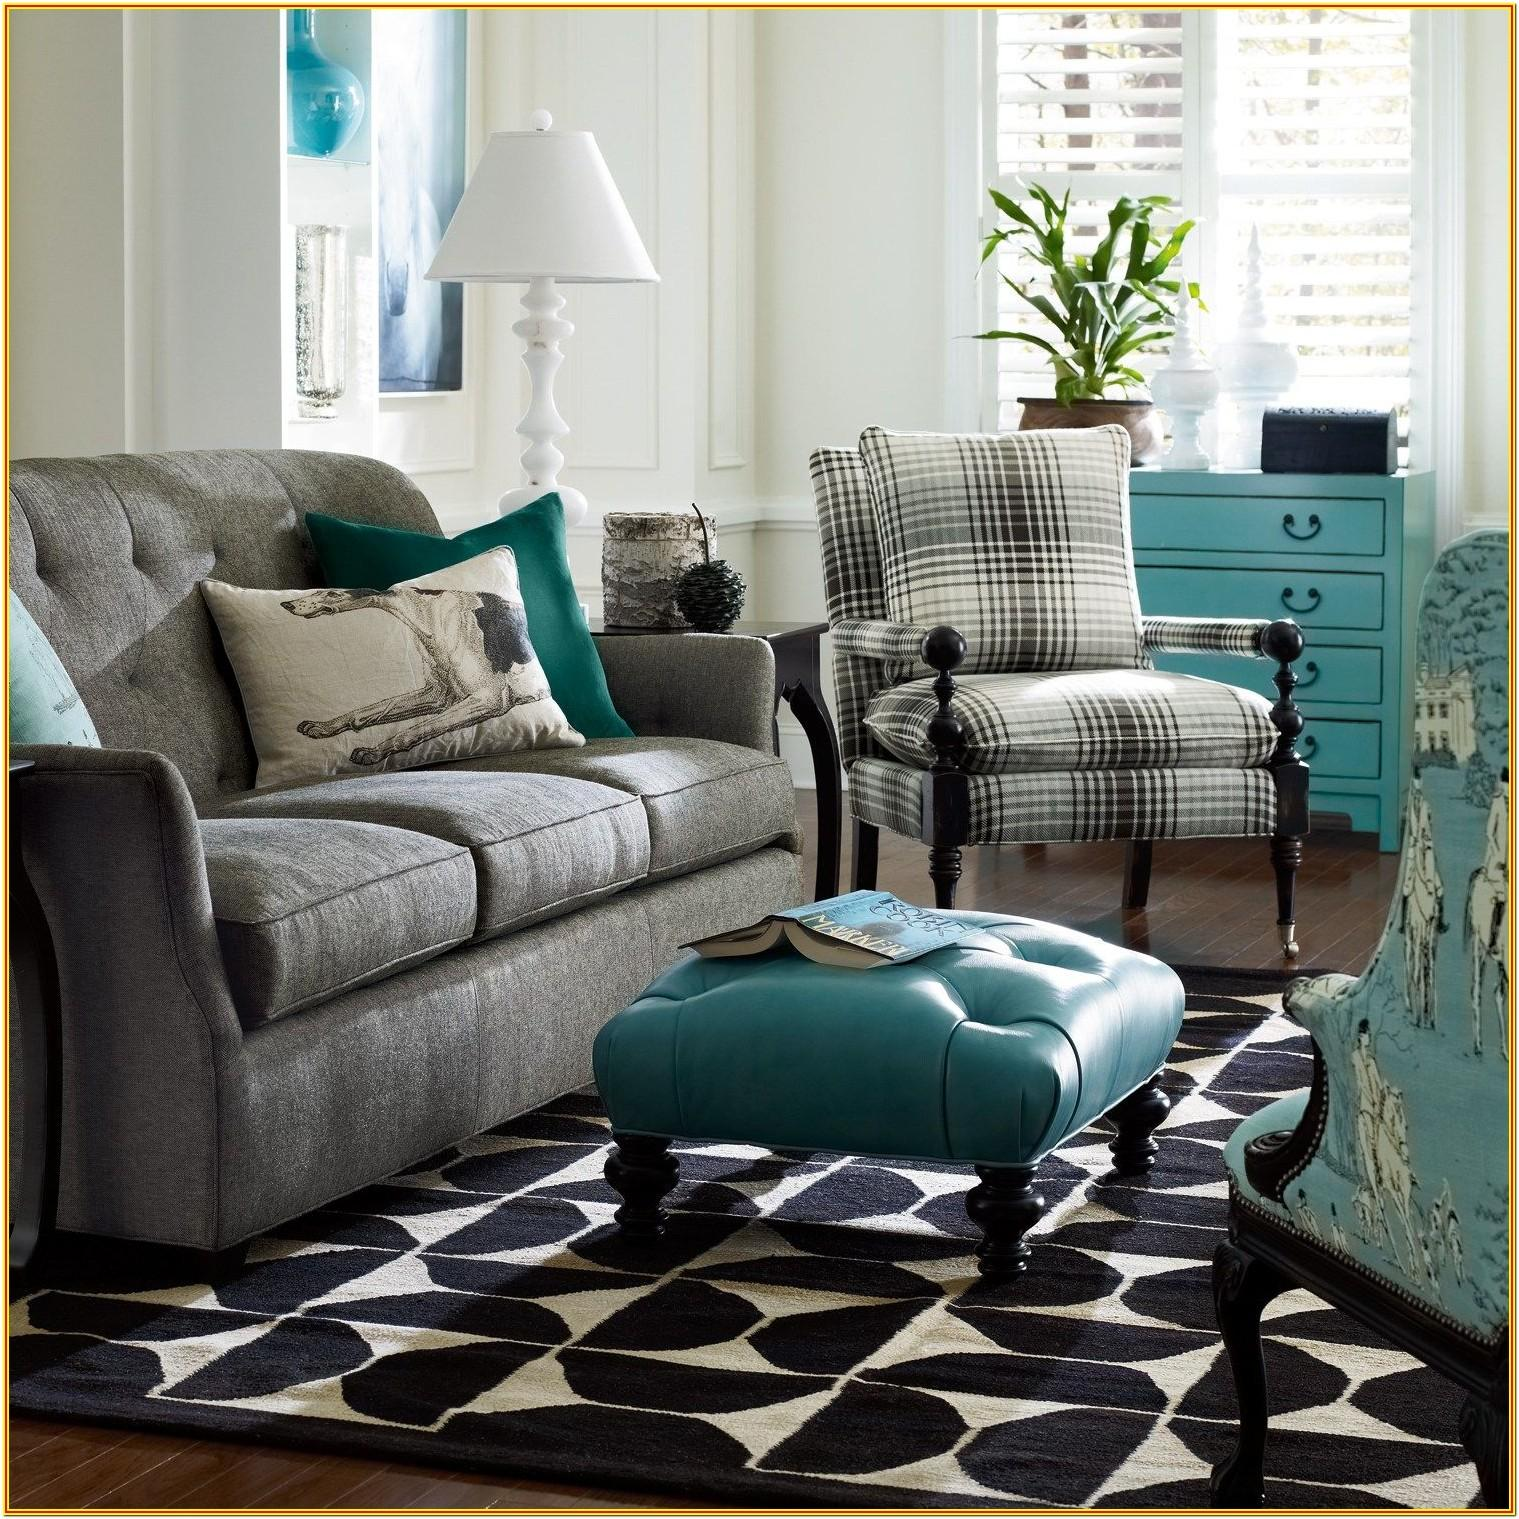 Gray Living Room With Teal Accents